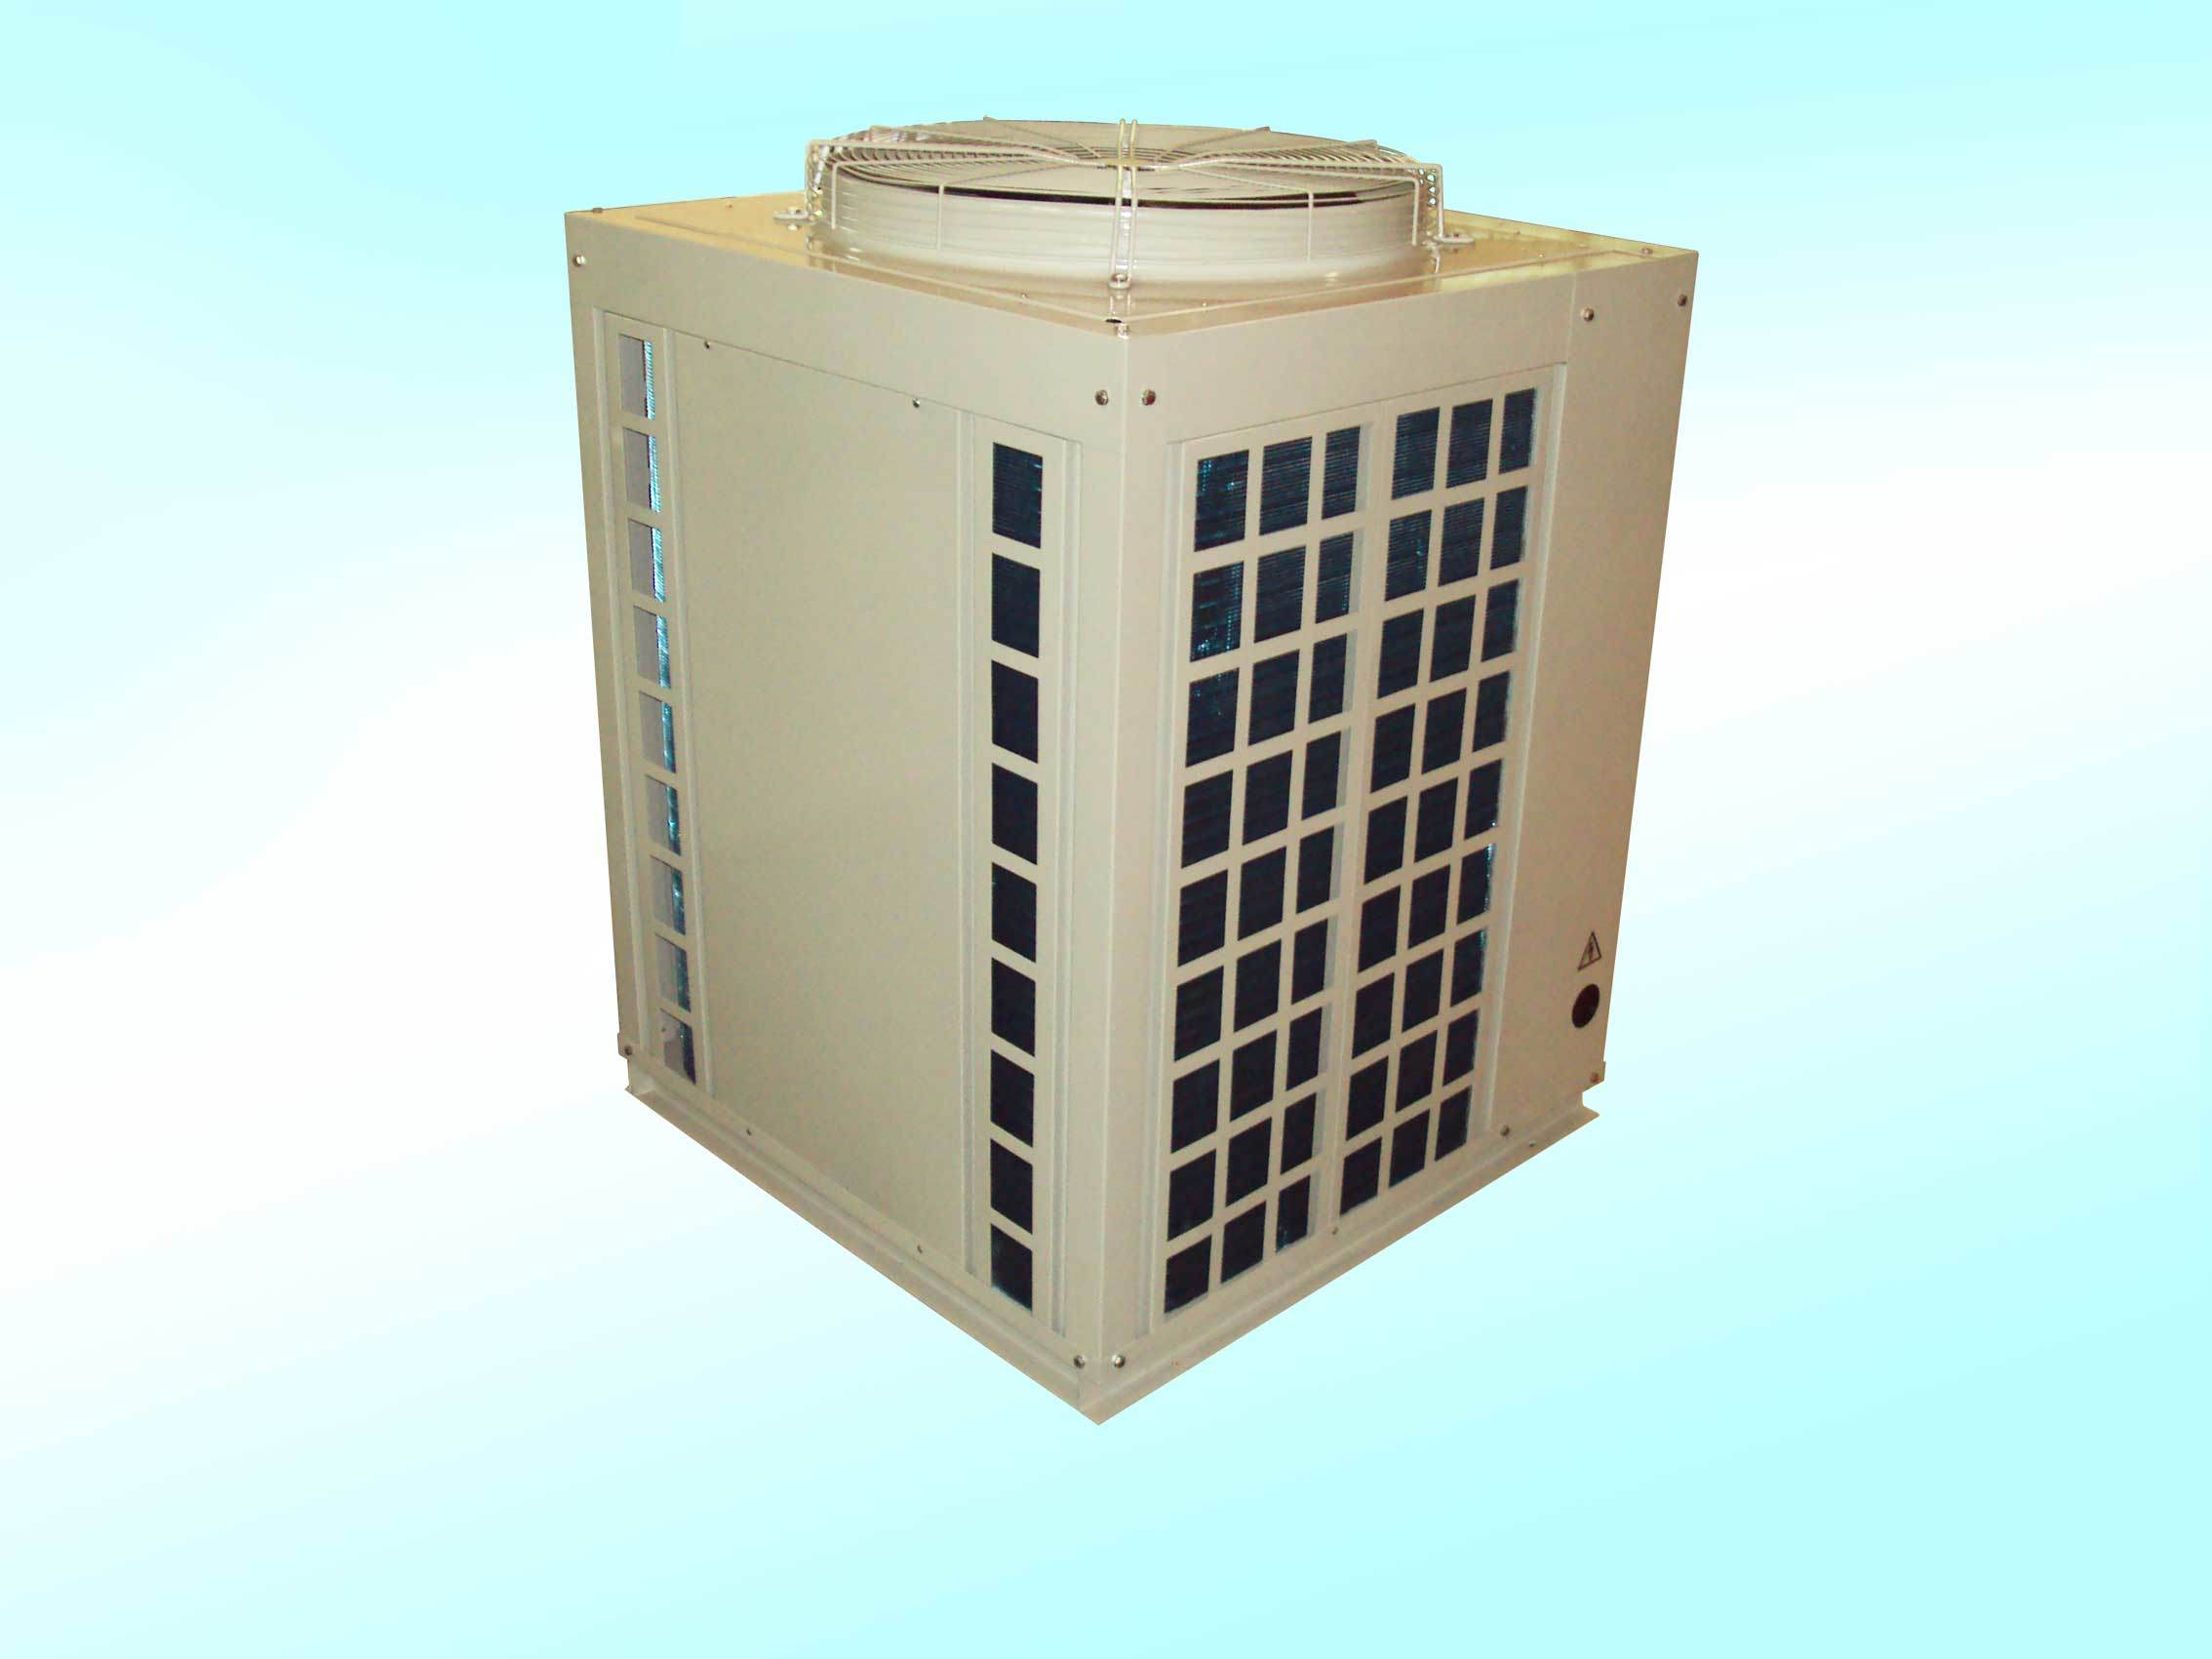 #13B8B3 Condensing Unit For Refrigeration Hephh.com Coolers  Best 2113 Condenser For Ac Unit photos with 2268x1701 px on helpvideos.info - Air Conditioners, Air Coolers and more